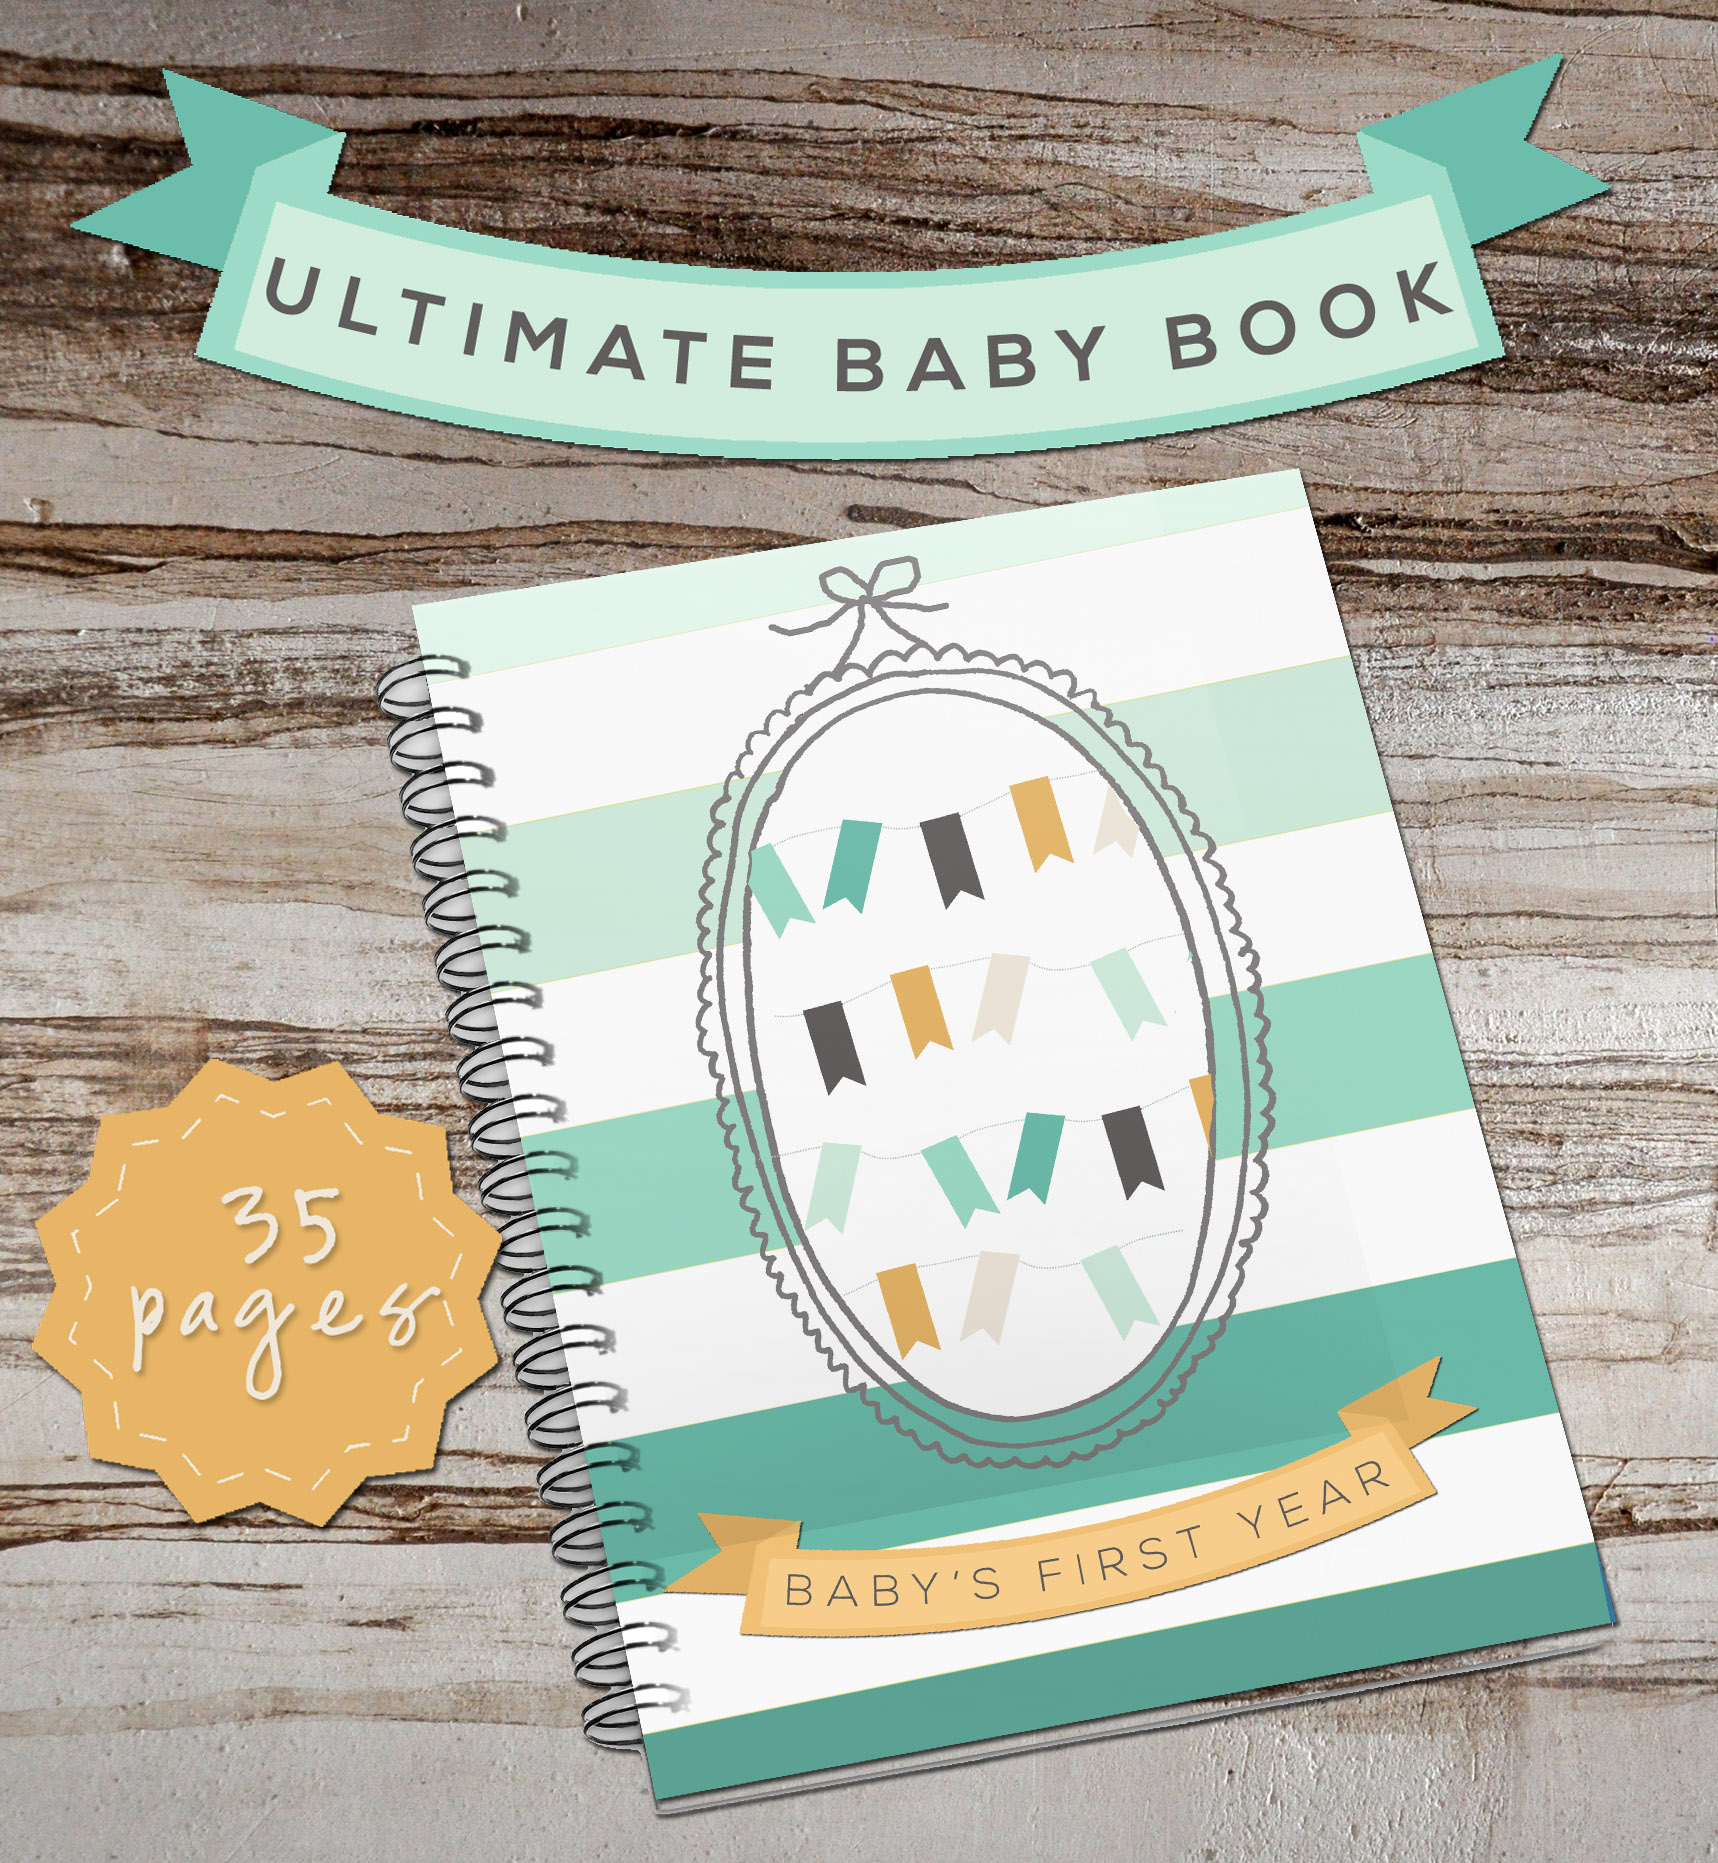 Ultimate Baby Book